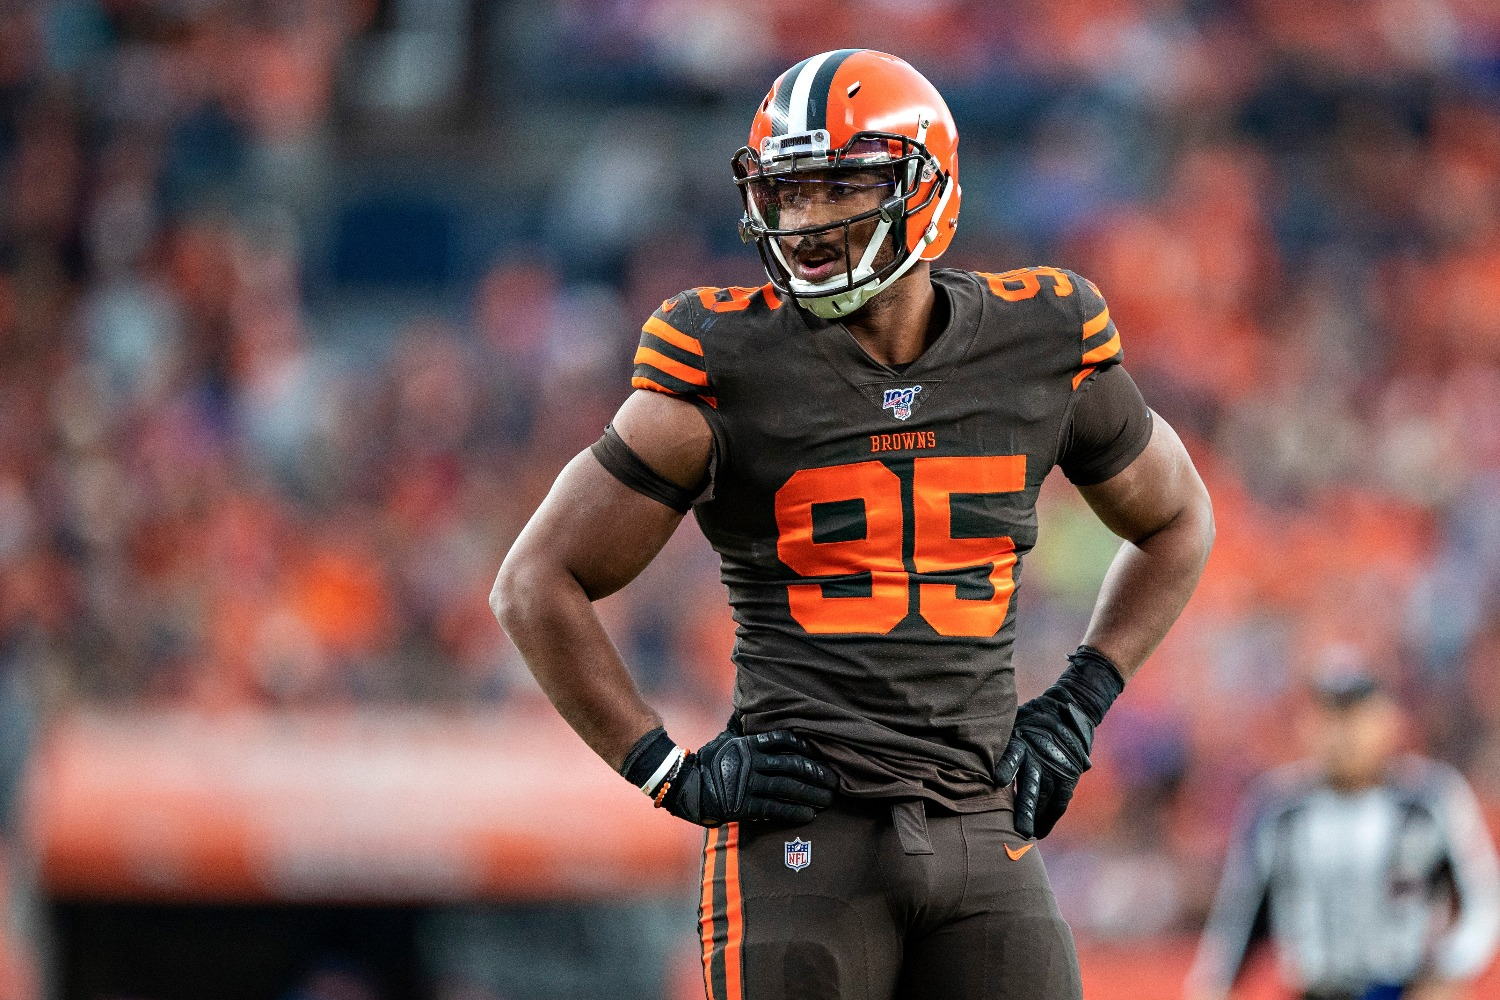 Cleveland Browns defensive end Myles Garrett will sign a record-breaking contract.